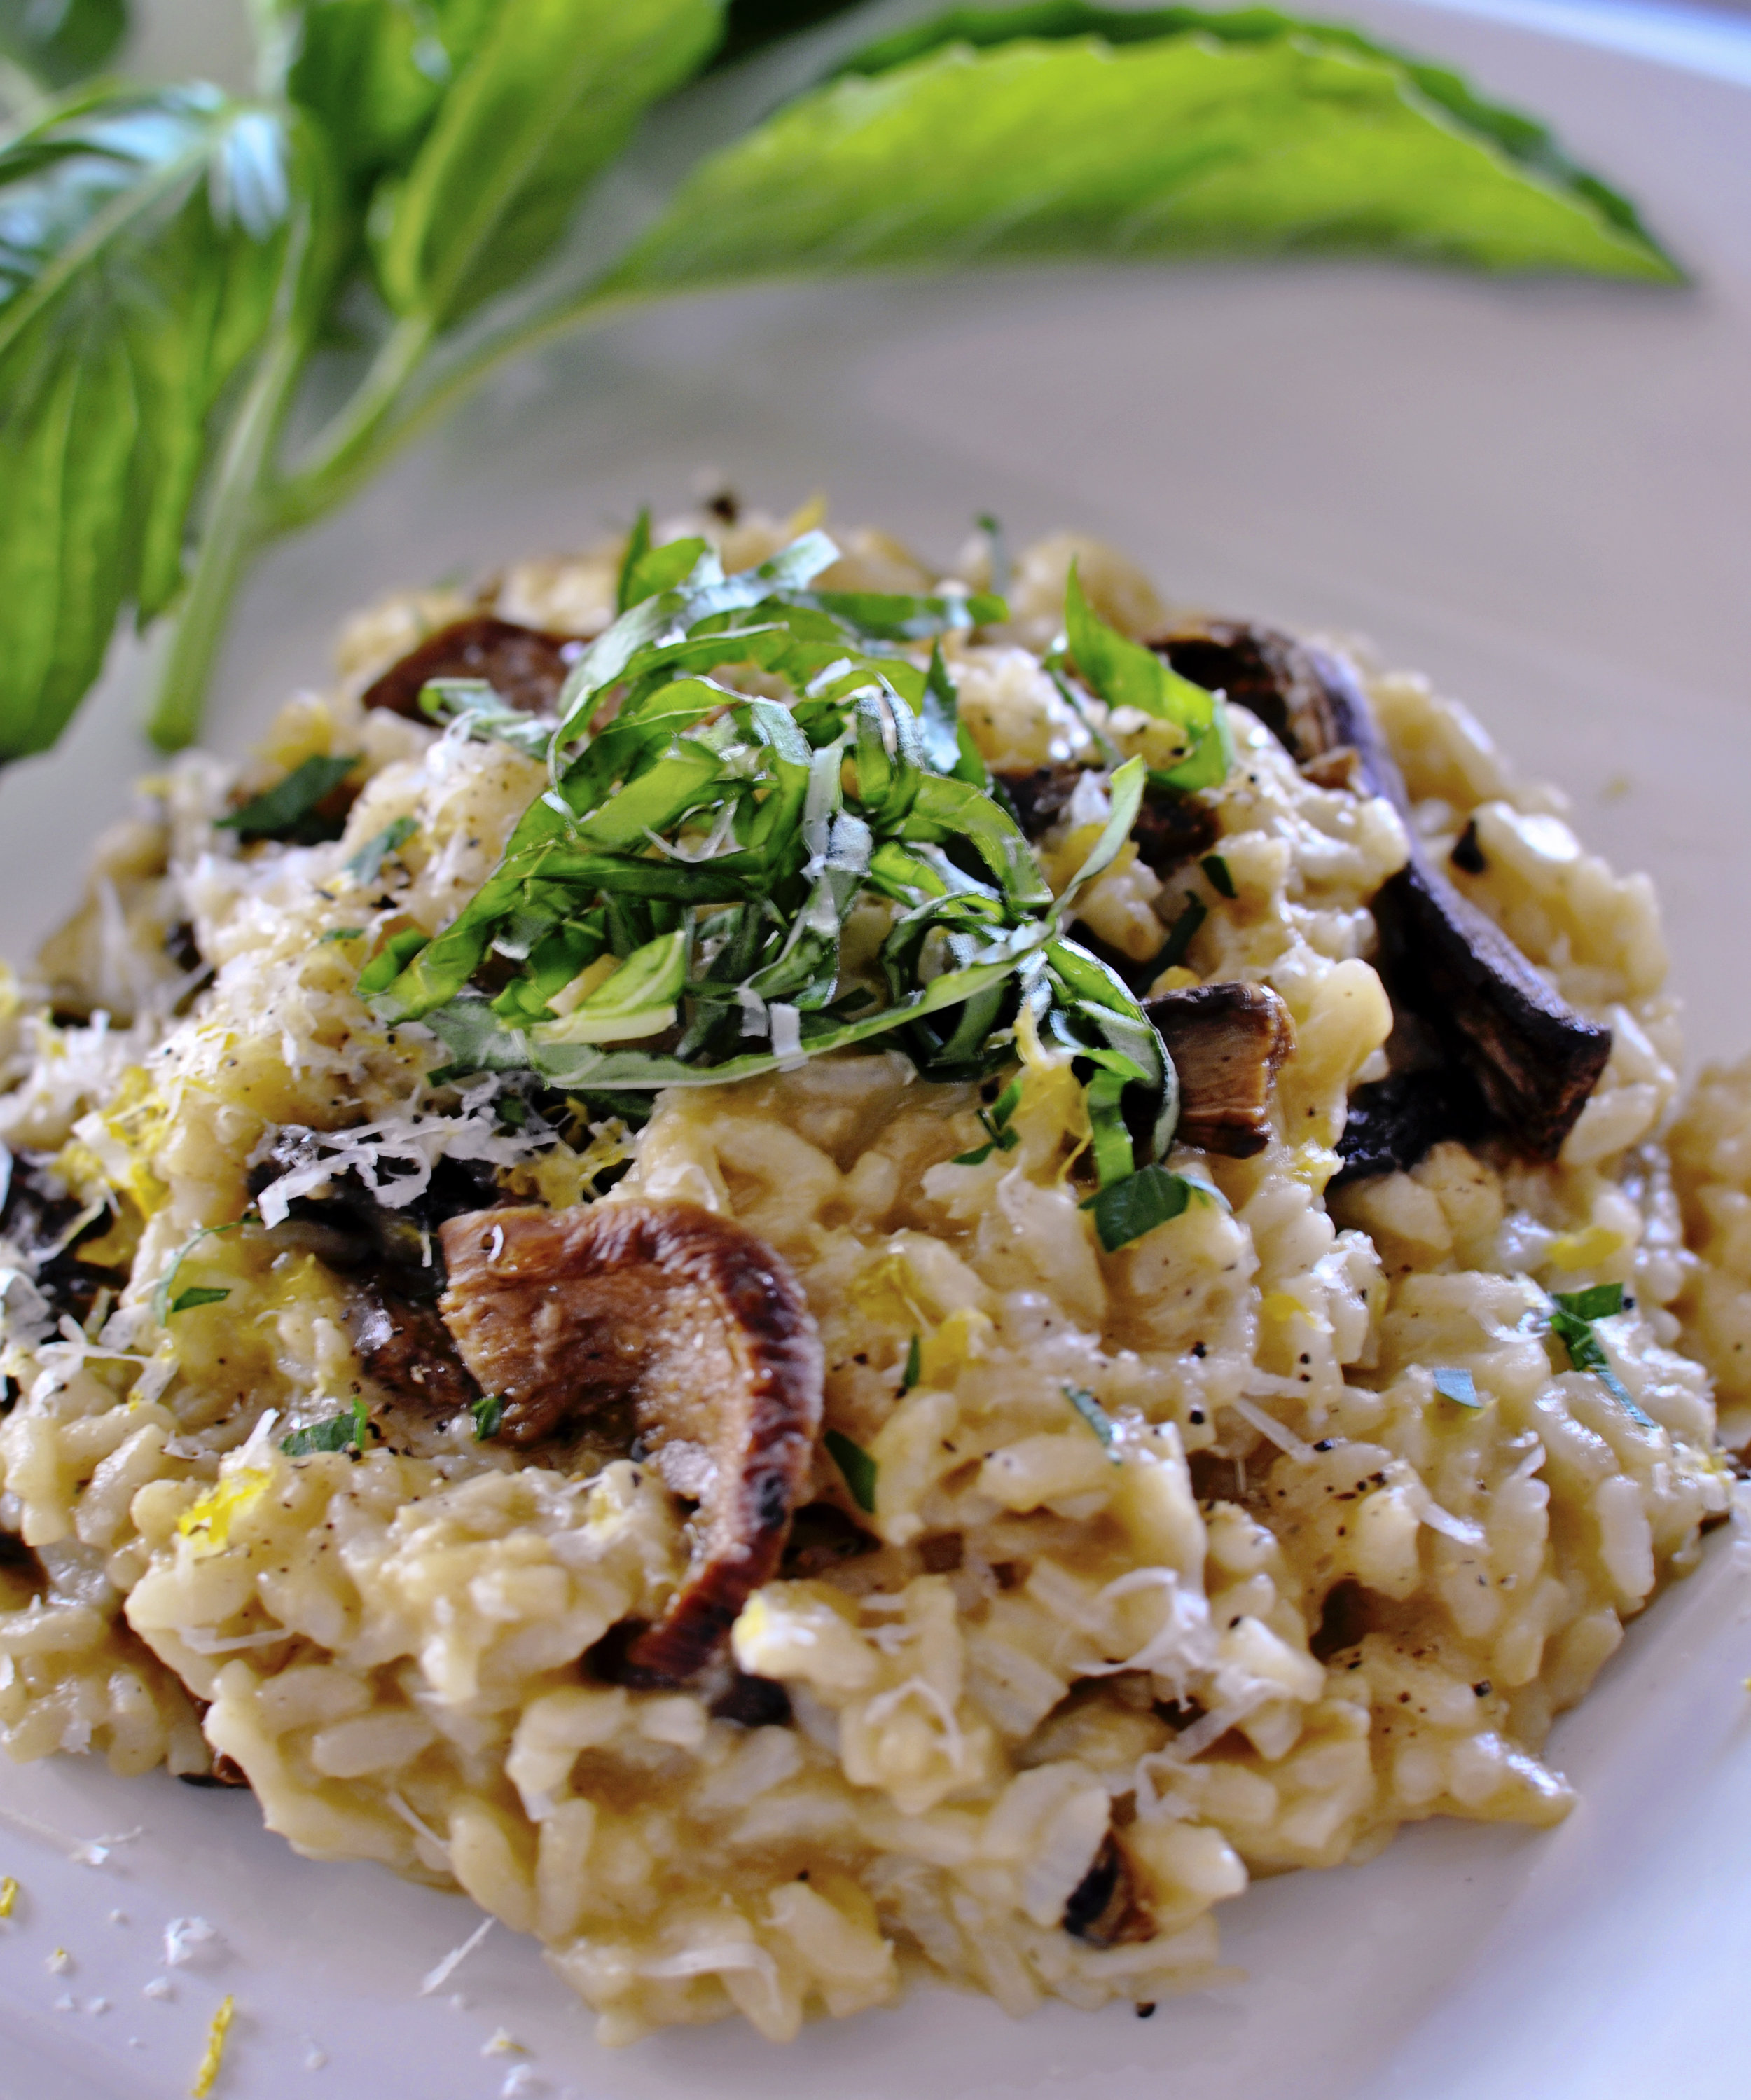 White Truffle Risotto with Porcini Mushroom www.gigiwilson.com/traditional-white-truffle-risotto